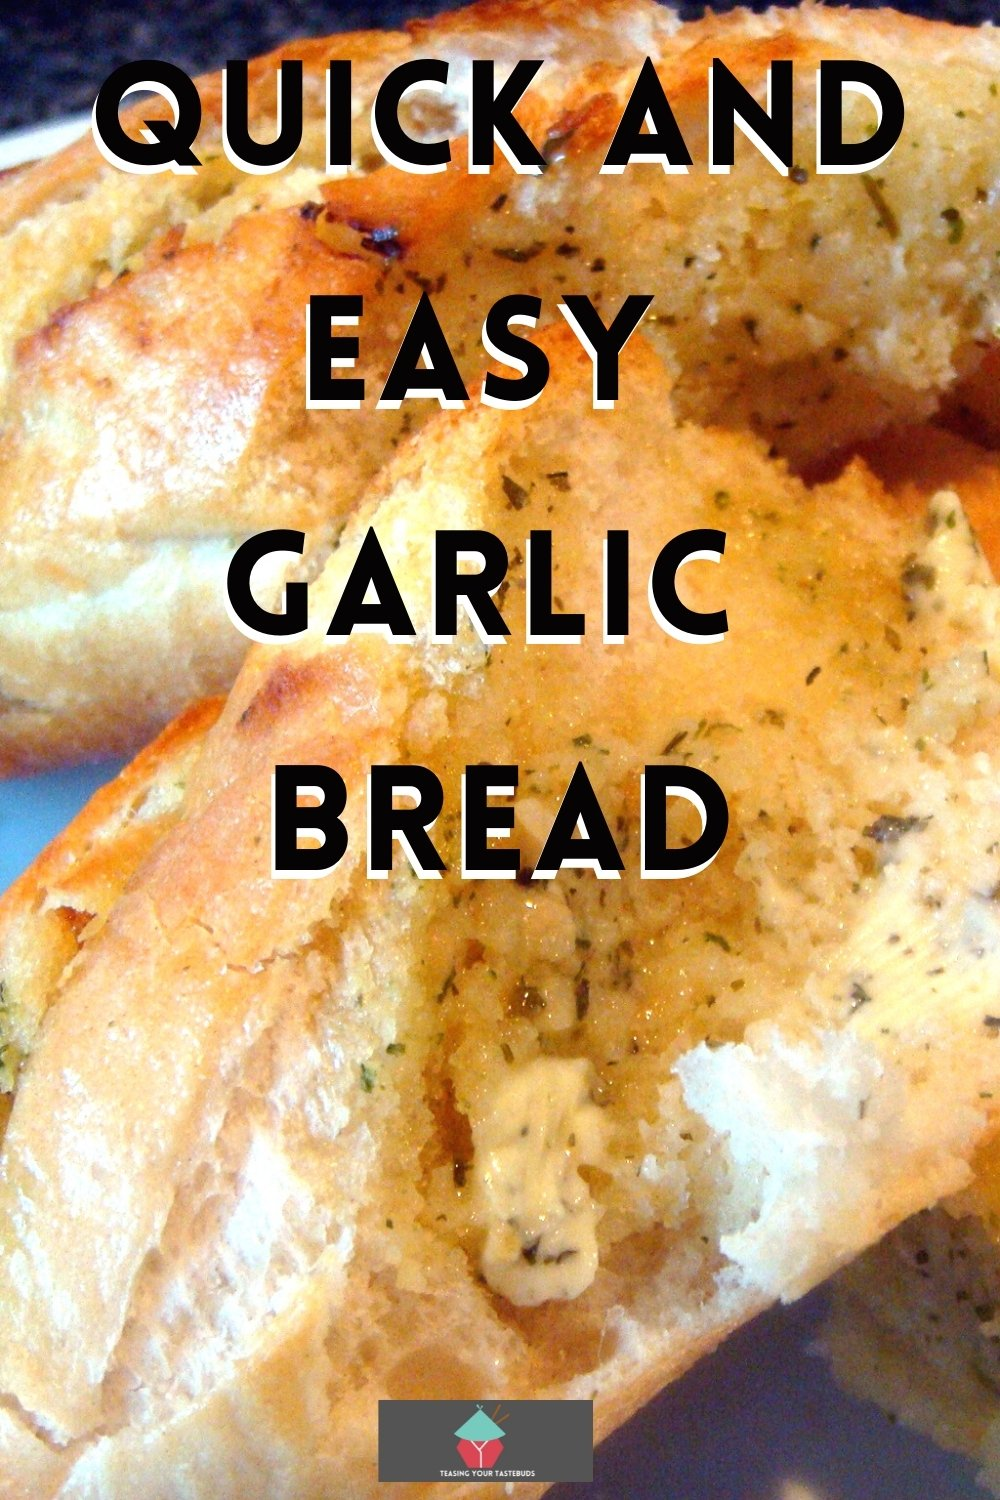 Quick and Easy Garlic Bread is a fuss free recipe, oven baked French baguettes filled with homemade garlic butter. A great side dish for dinner or party food